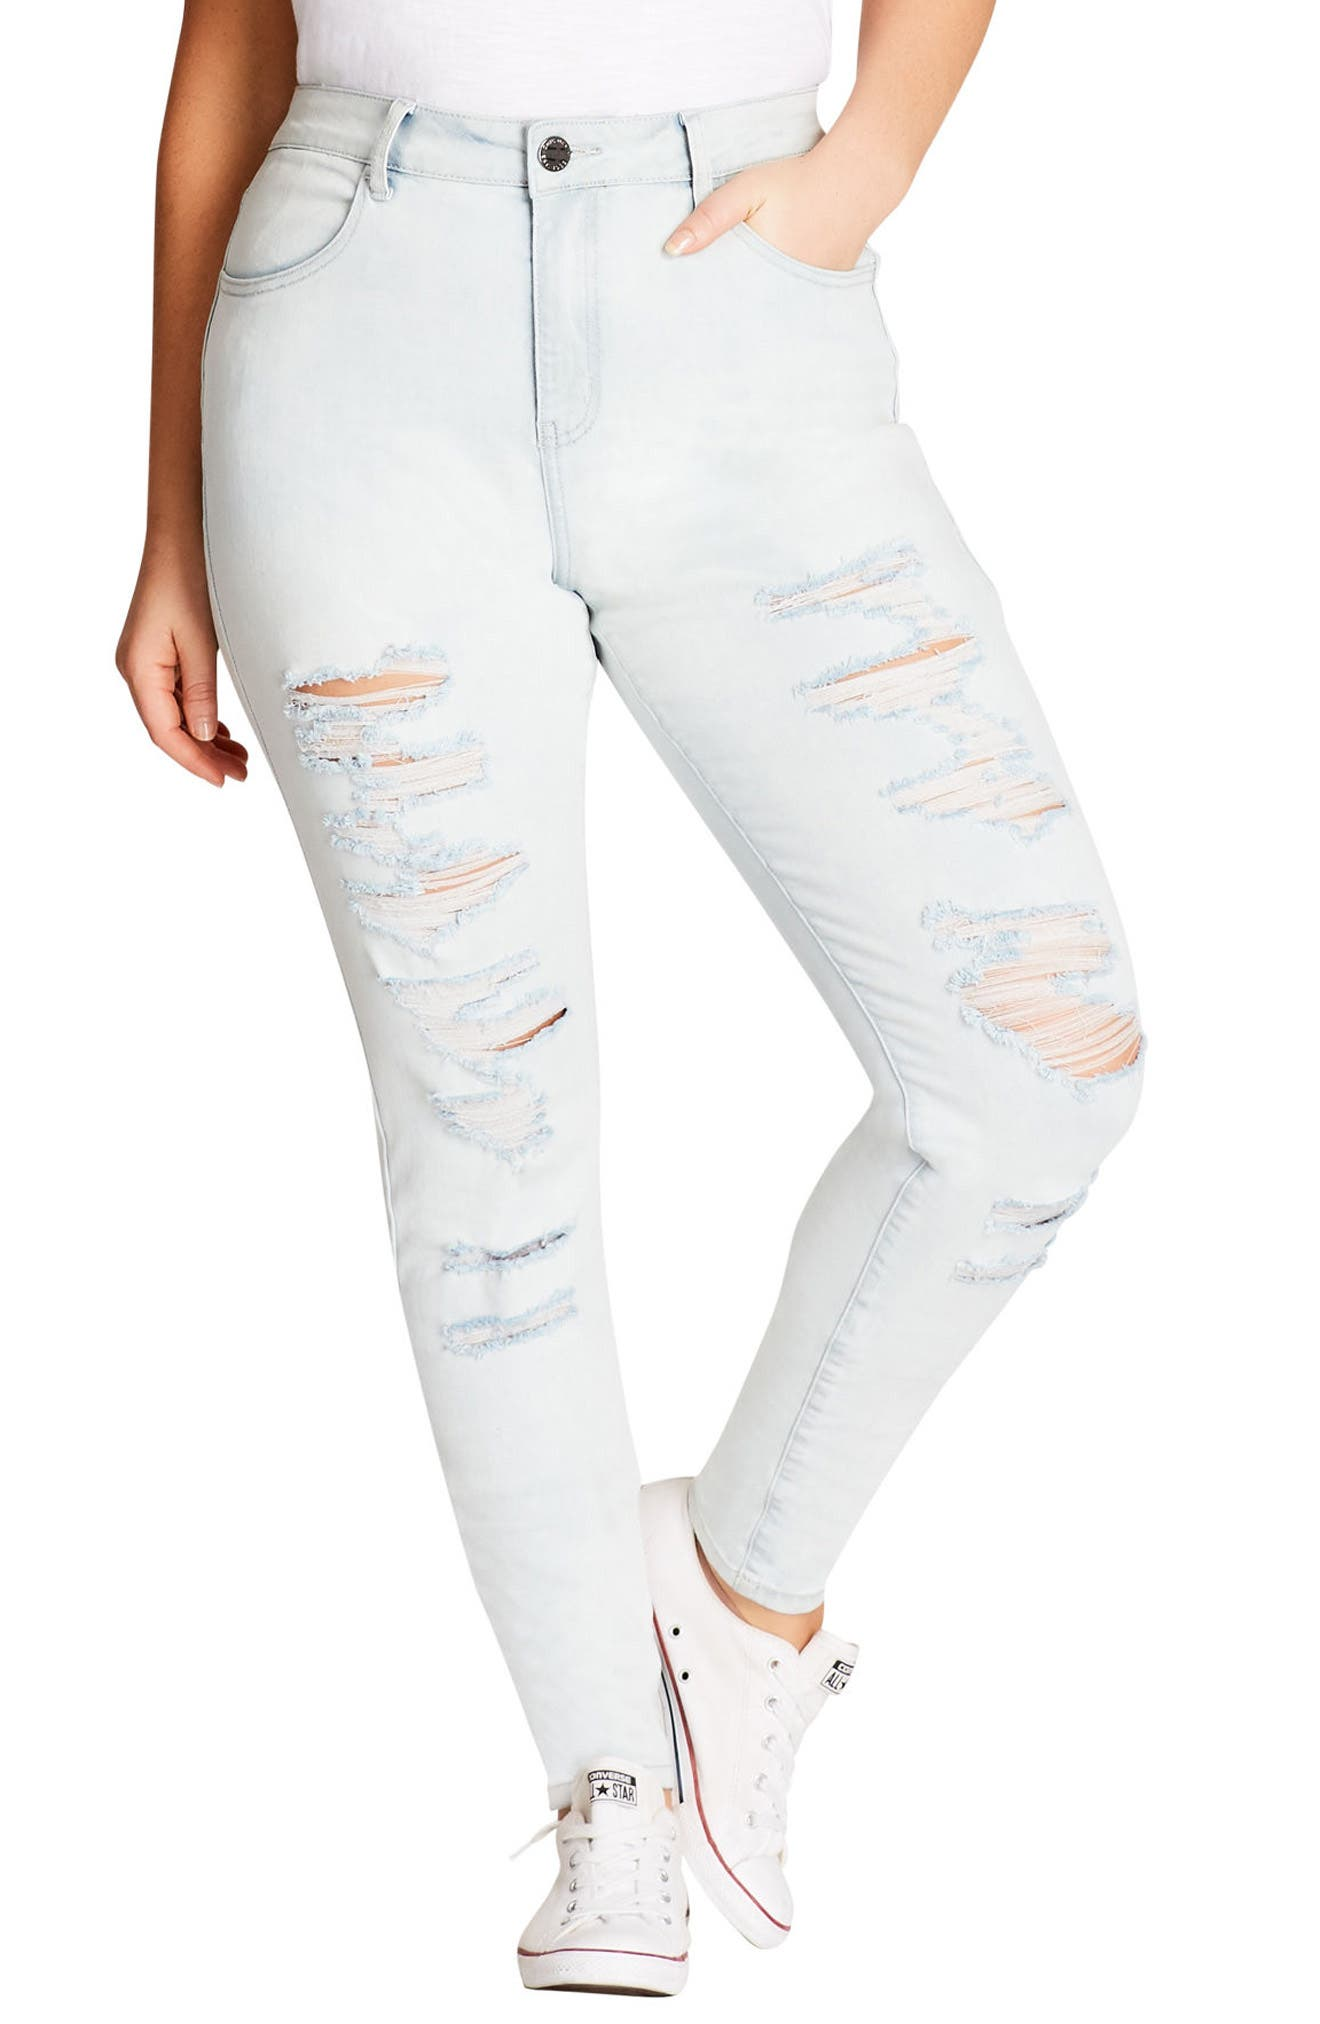 Alternate Image 1 Selected - City Chic Distressed Skinny Jeans (Plus Size)